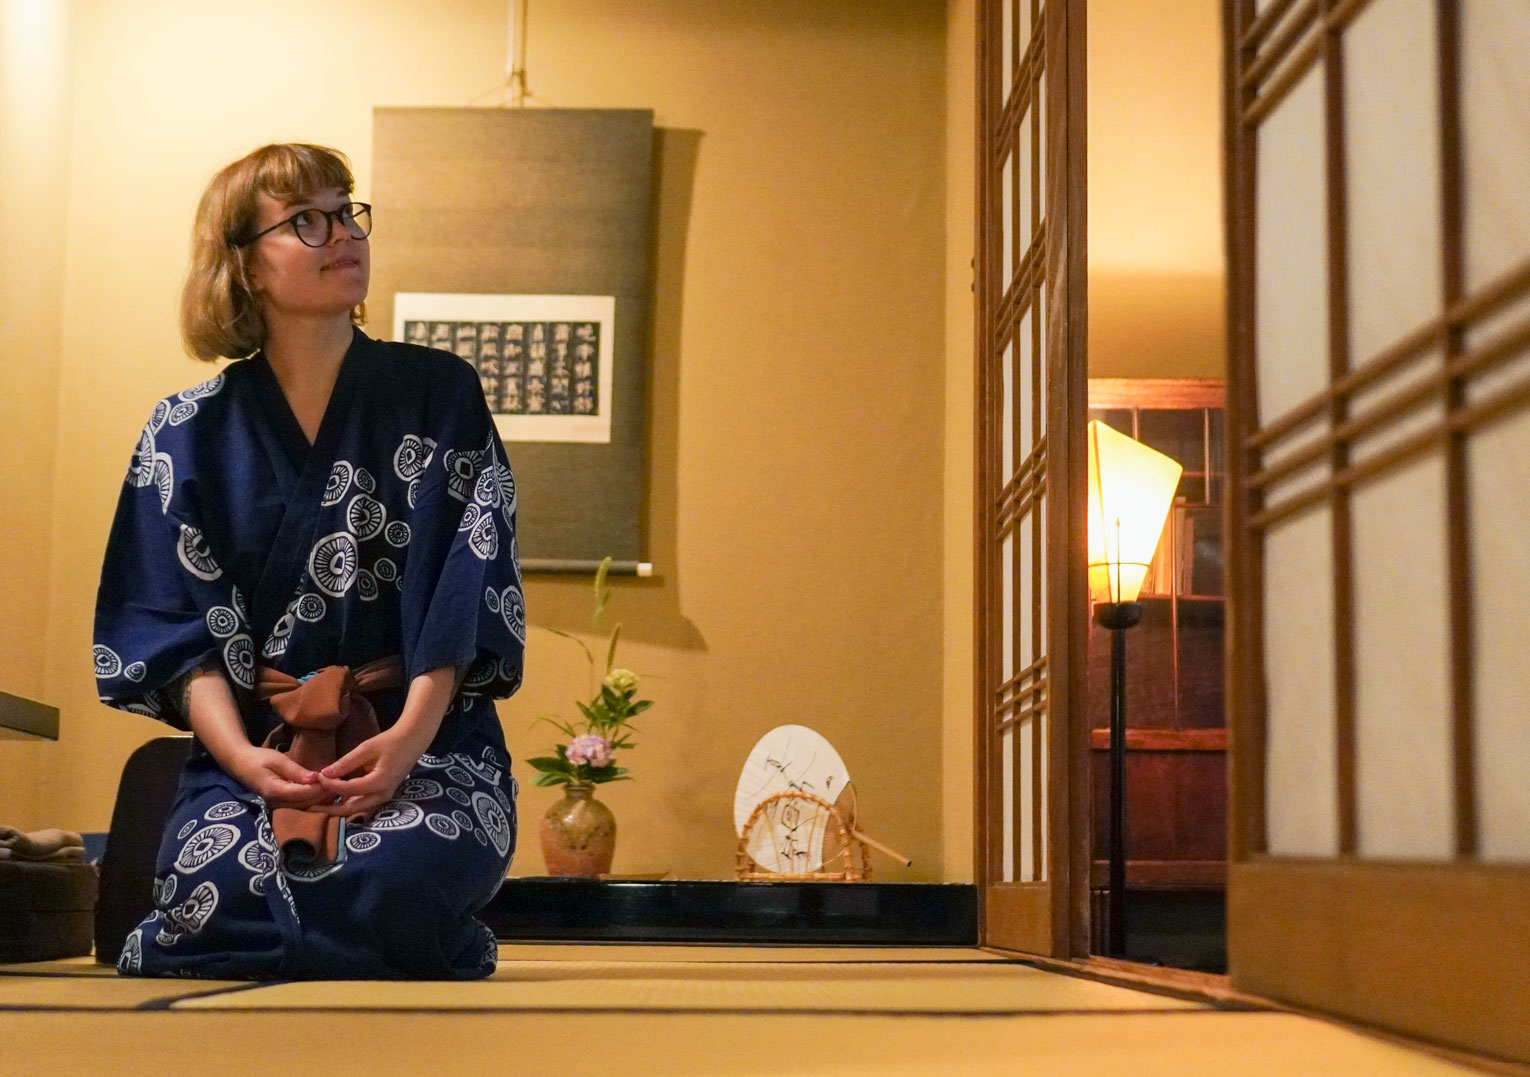 wearing a yukata in Goshoboh